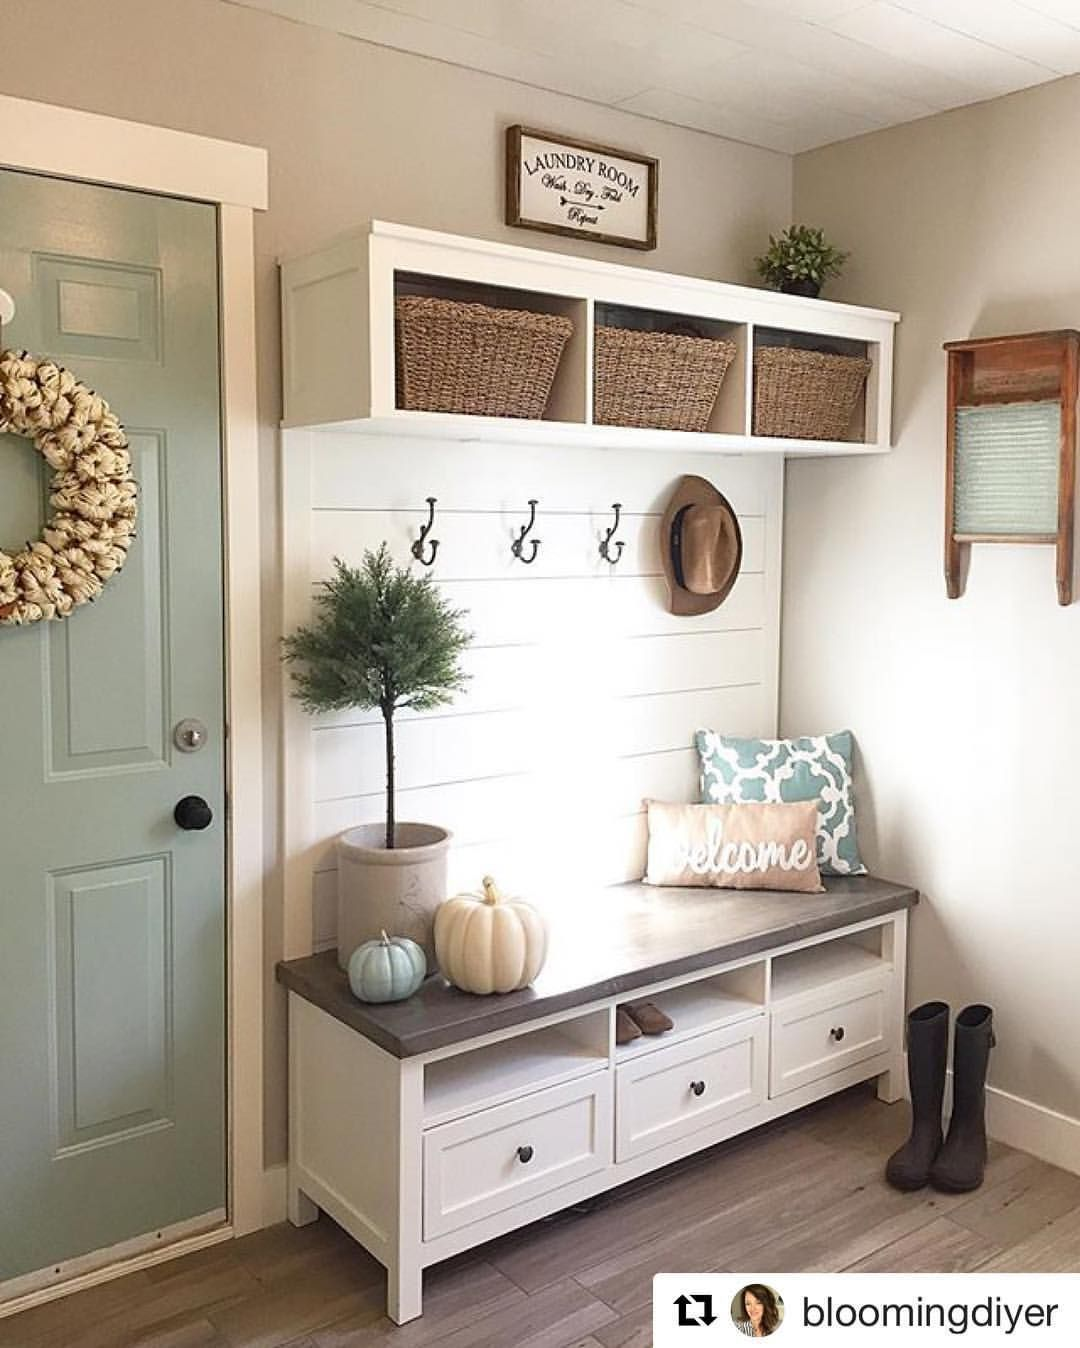 Pin By Angelina Biron Schuch On Home Mudroom Pinterest Lisa